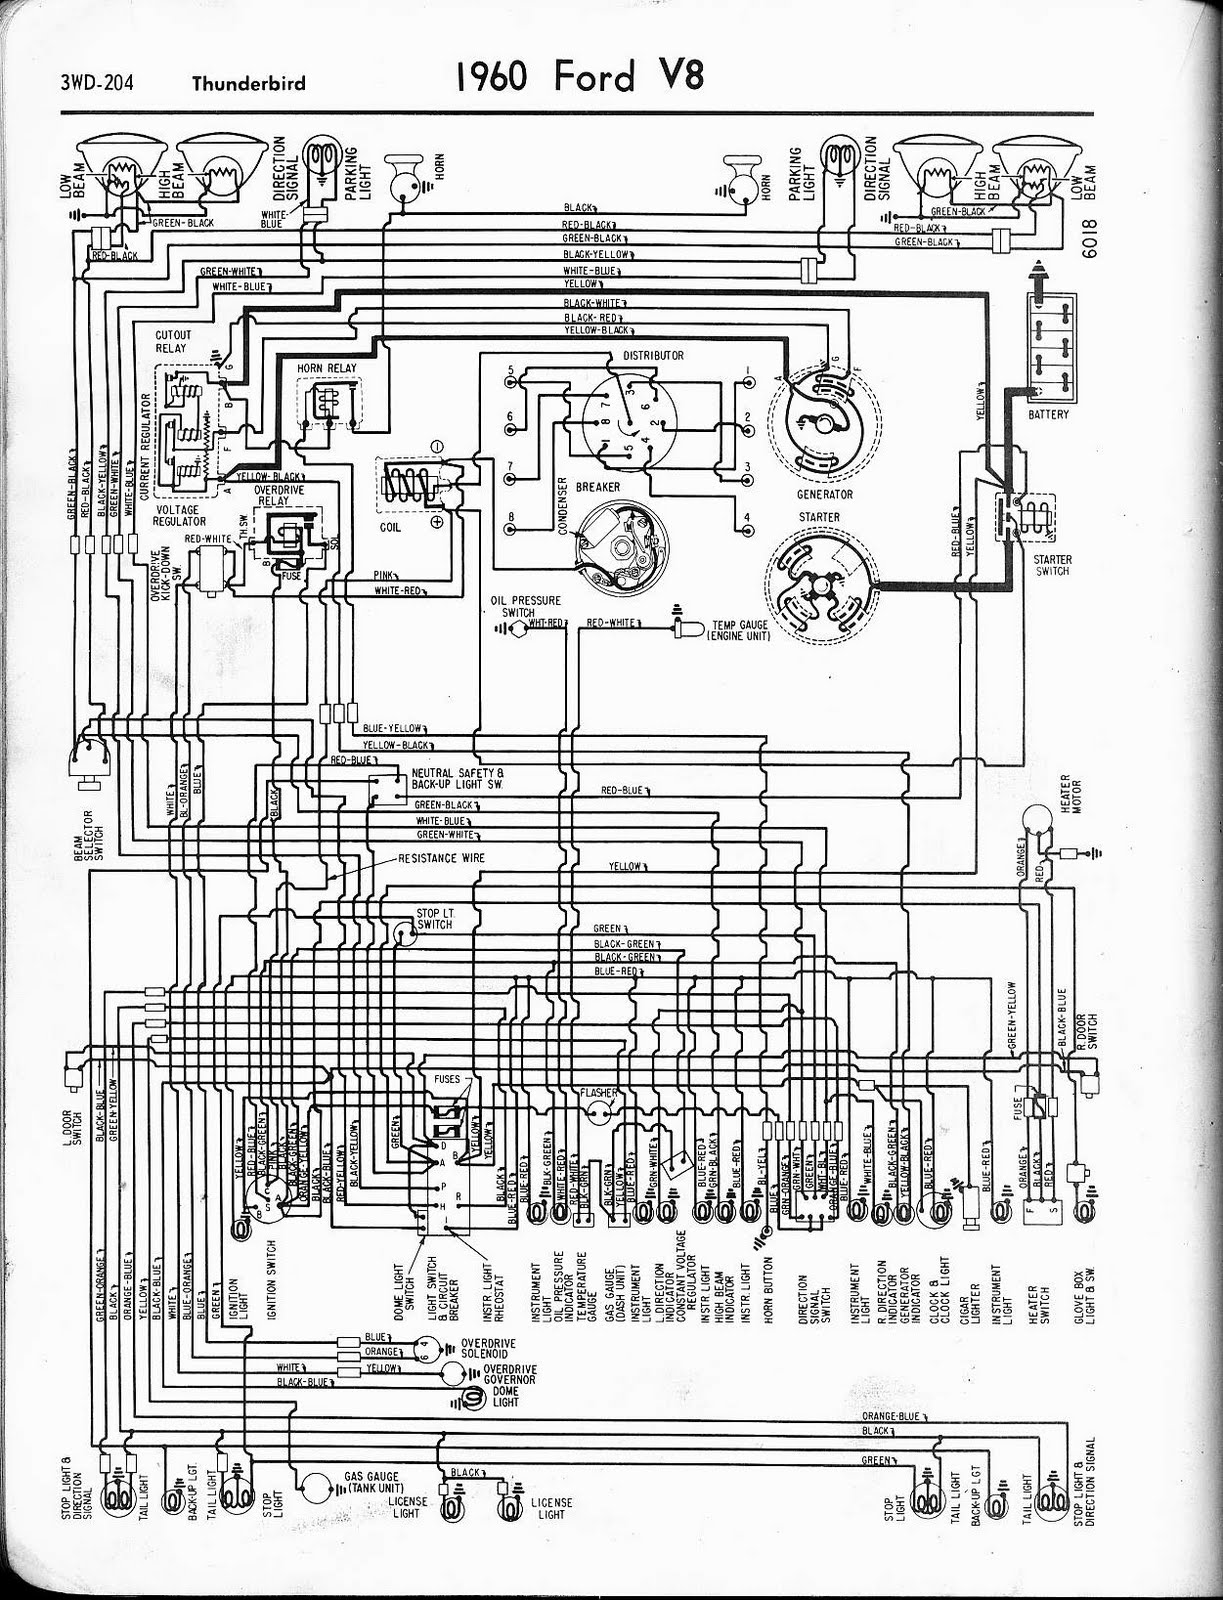 1955 Ford Fairlane Wiring Diagram Generator Wiring Diagram Corsa A Corsa A Pasticceriagele It